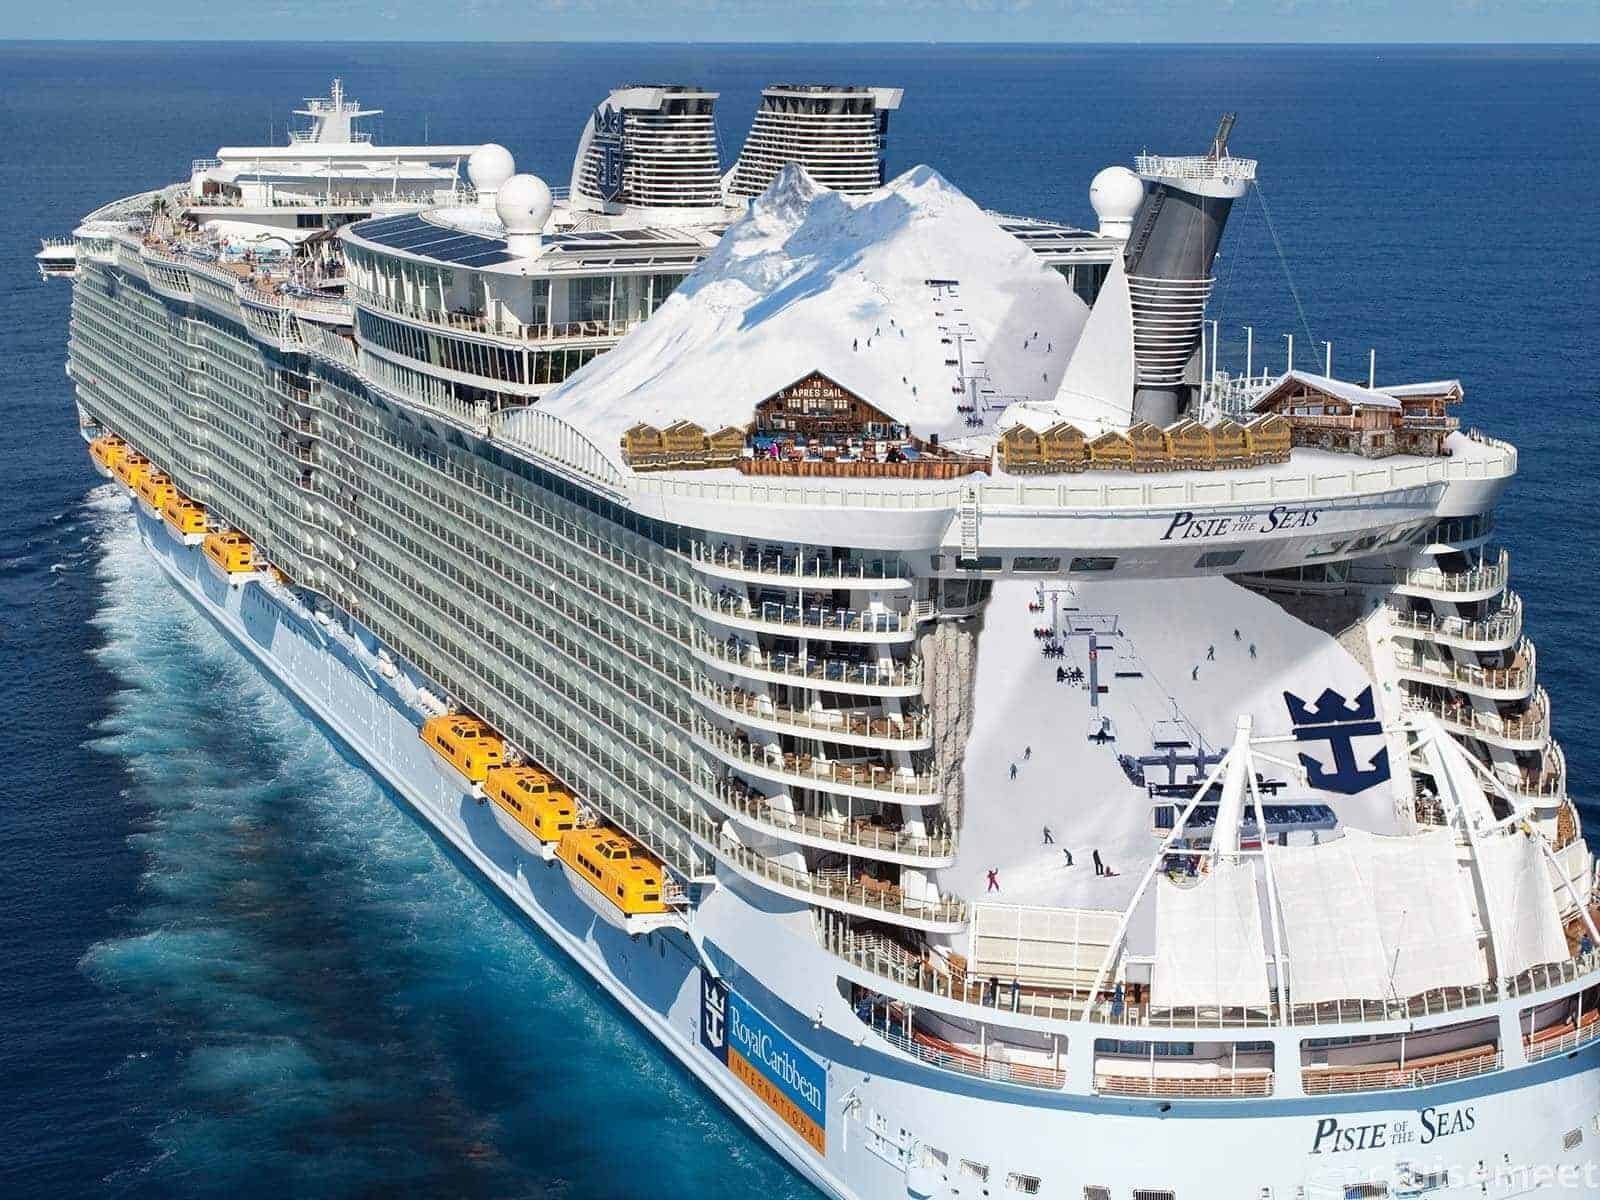 World S First Ski Resort At Sea Piste Of The Seas From